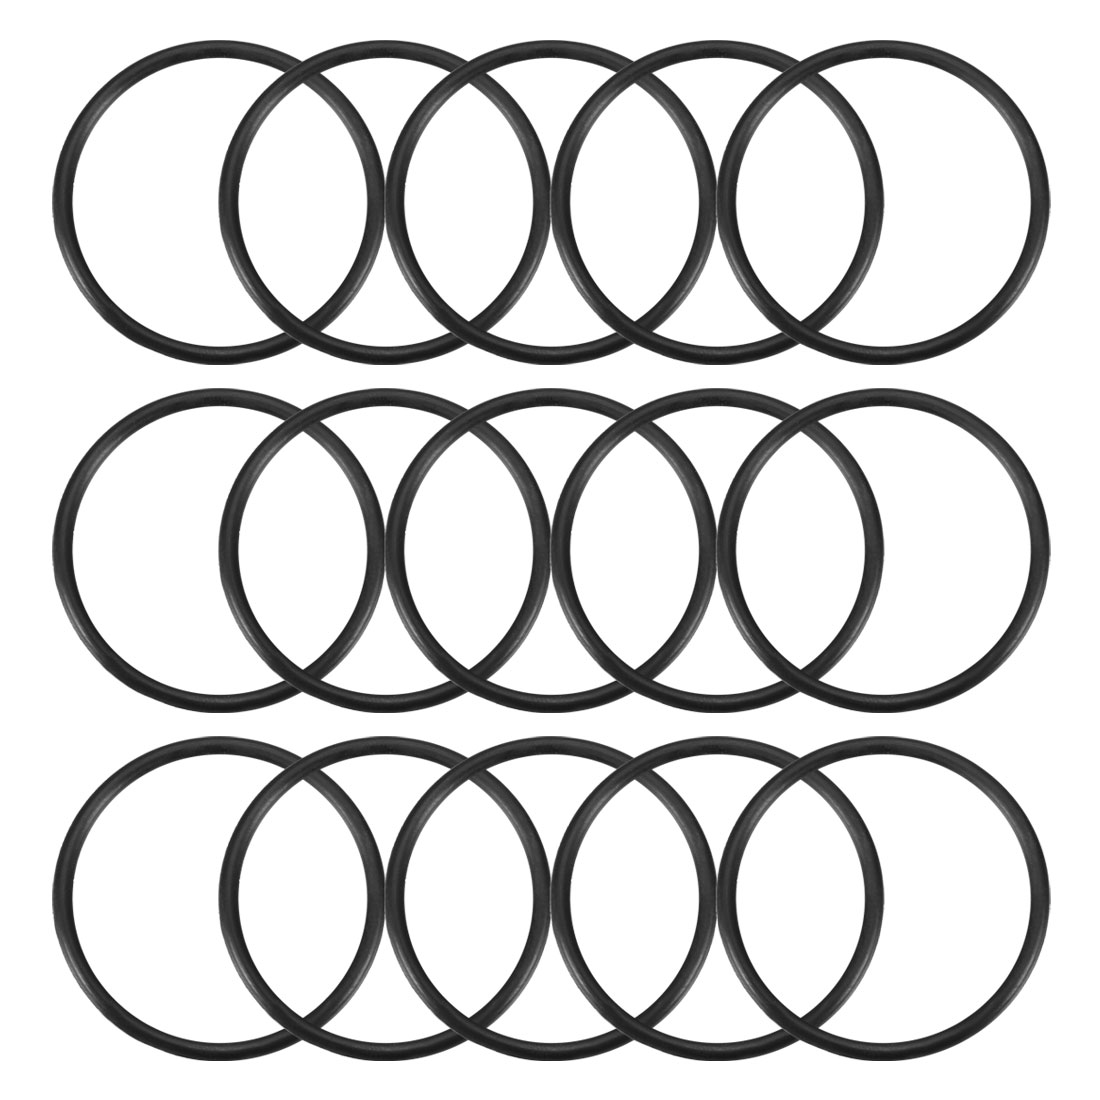 15Pcs Black 33mm Dia 2mm Thickness Nitrile Rubber O Ring NBR Sealing Grommets